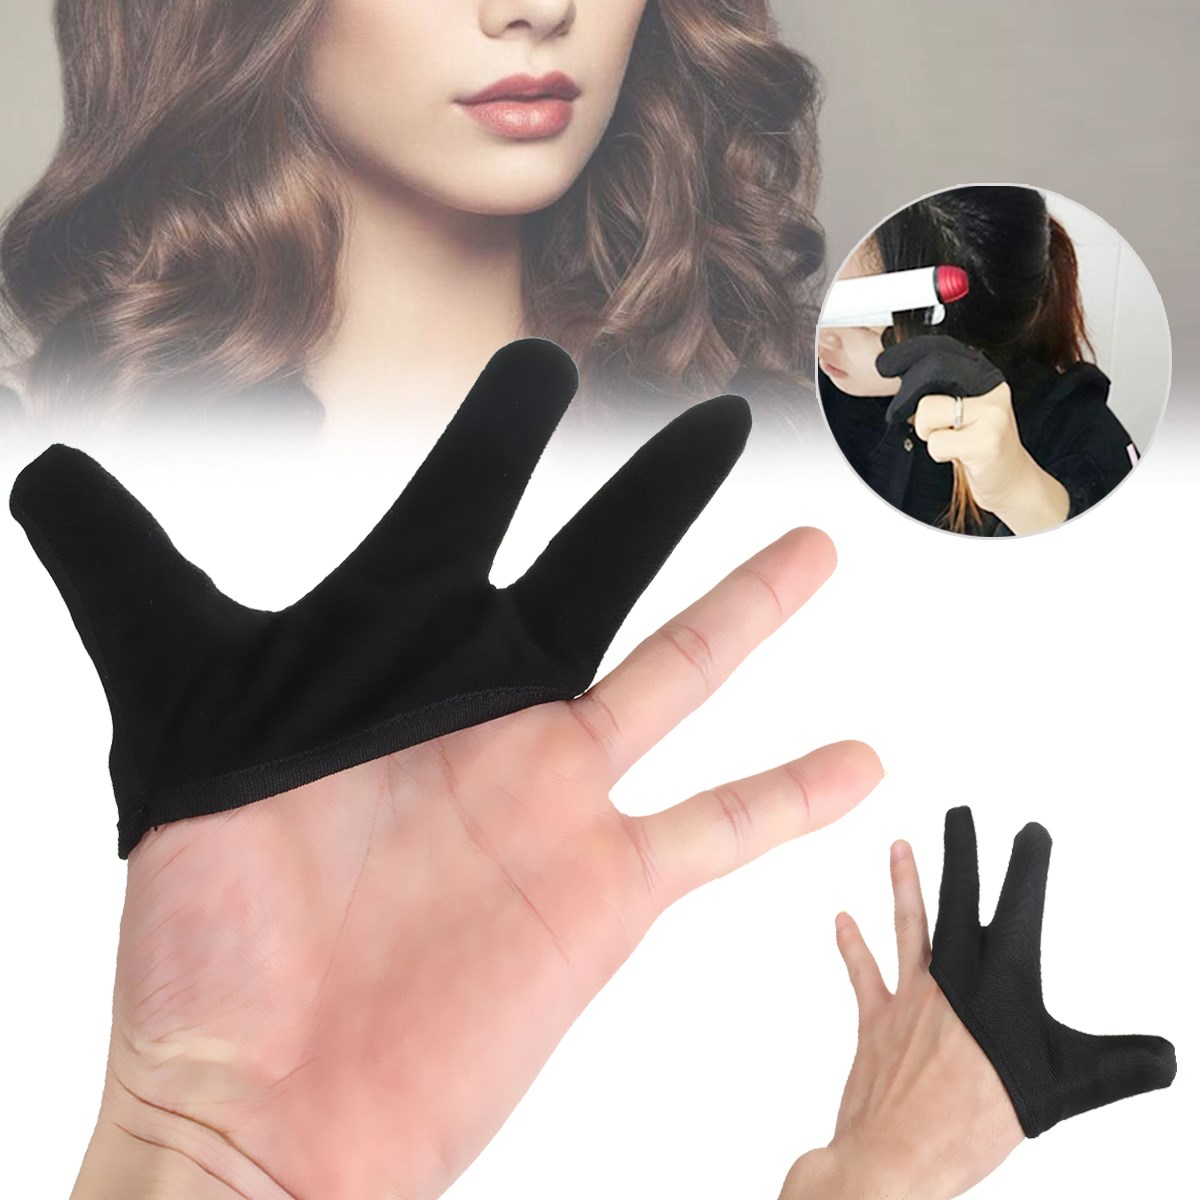 Hairdressing 3 Finger Heat-Resistant Barber Tools Glove Black Finger Glove Salon Styling Tools For Hair Straightening Curling